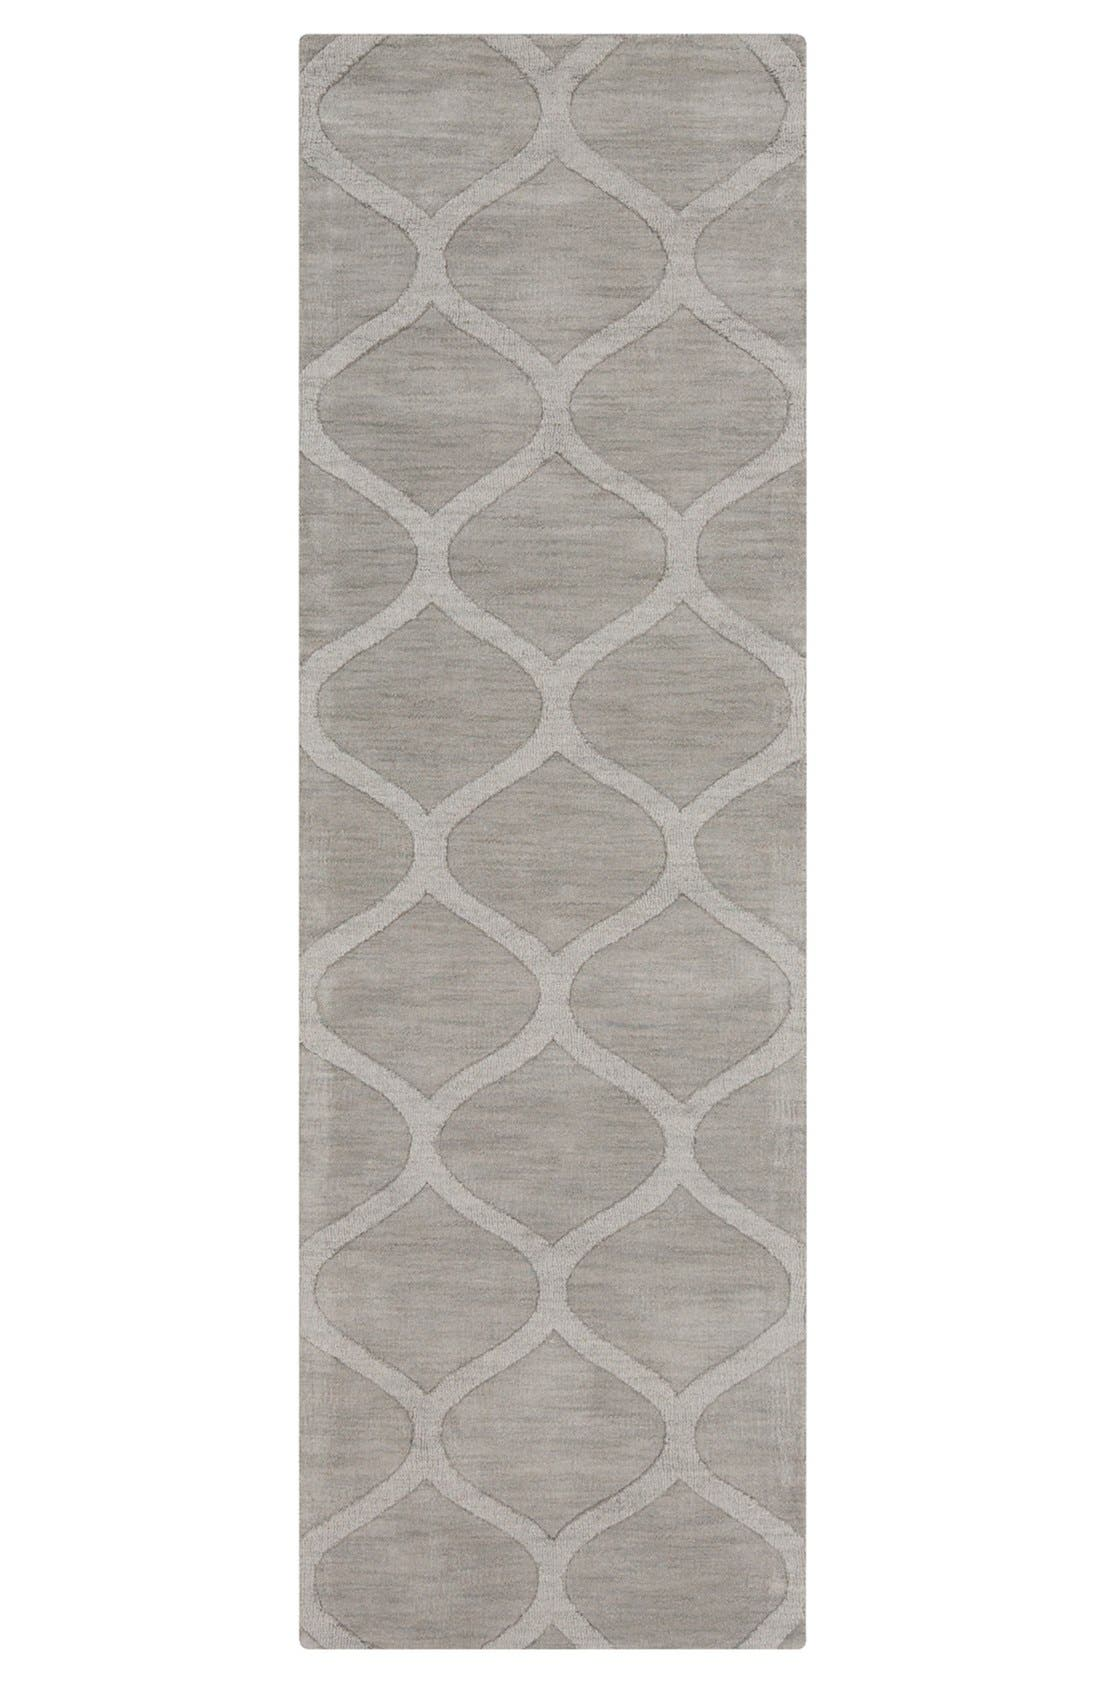 'Mystique' Hand Loomed Wool Rug,                             Alternate thumbnail 2, color,                             Grey